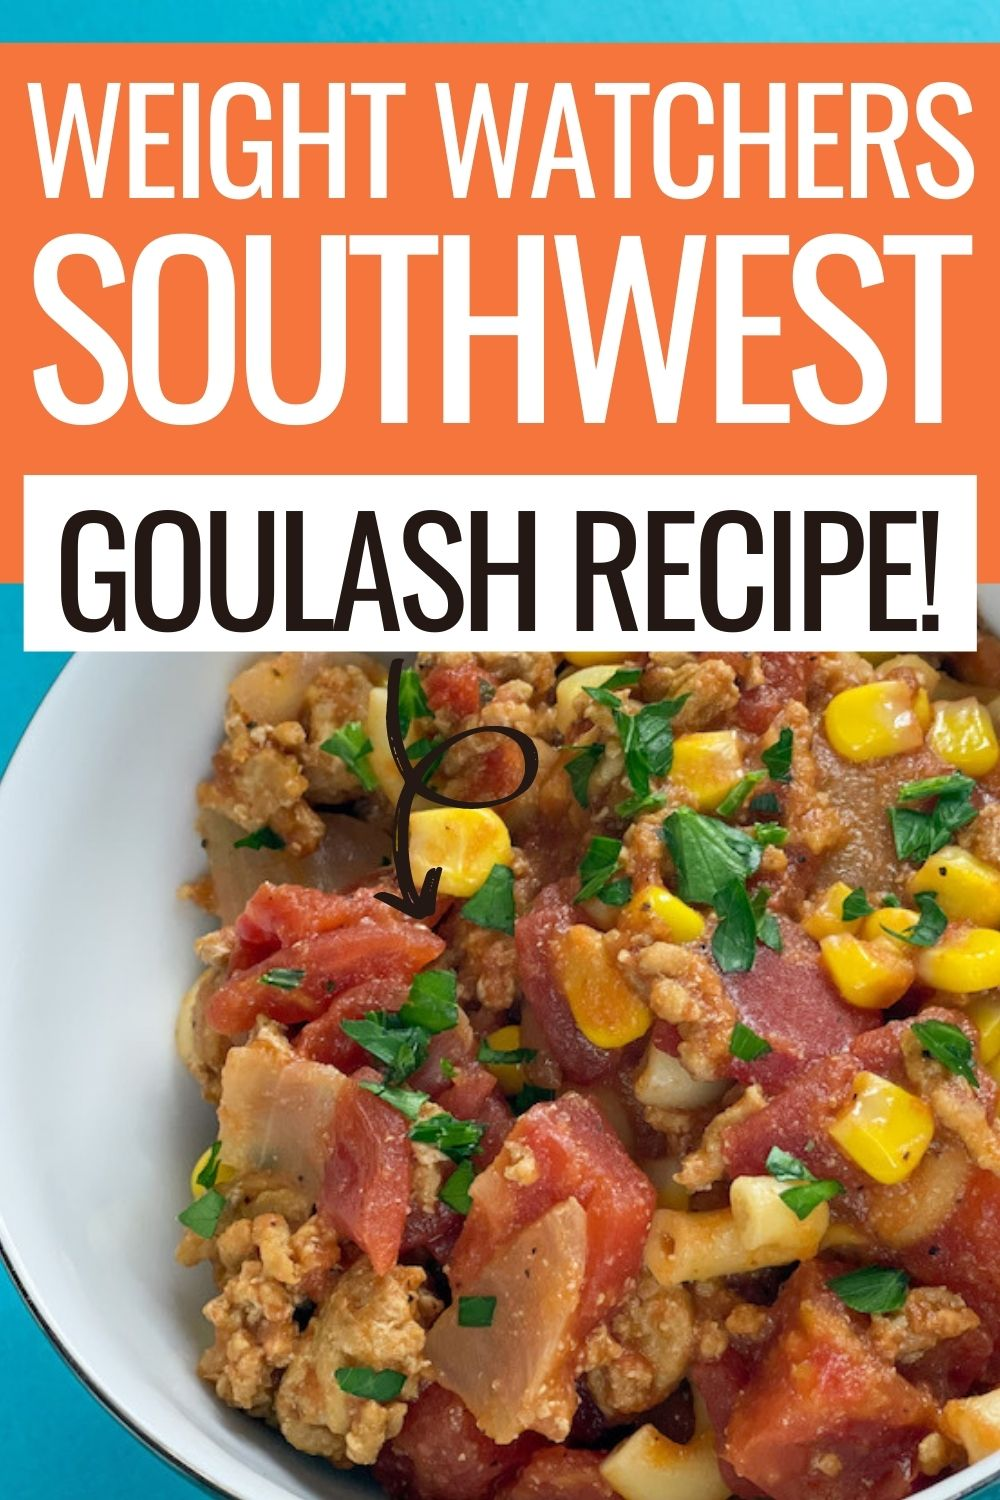 Pin showing the finished weight watchers goulash recipe ready to eat with title across the top.